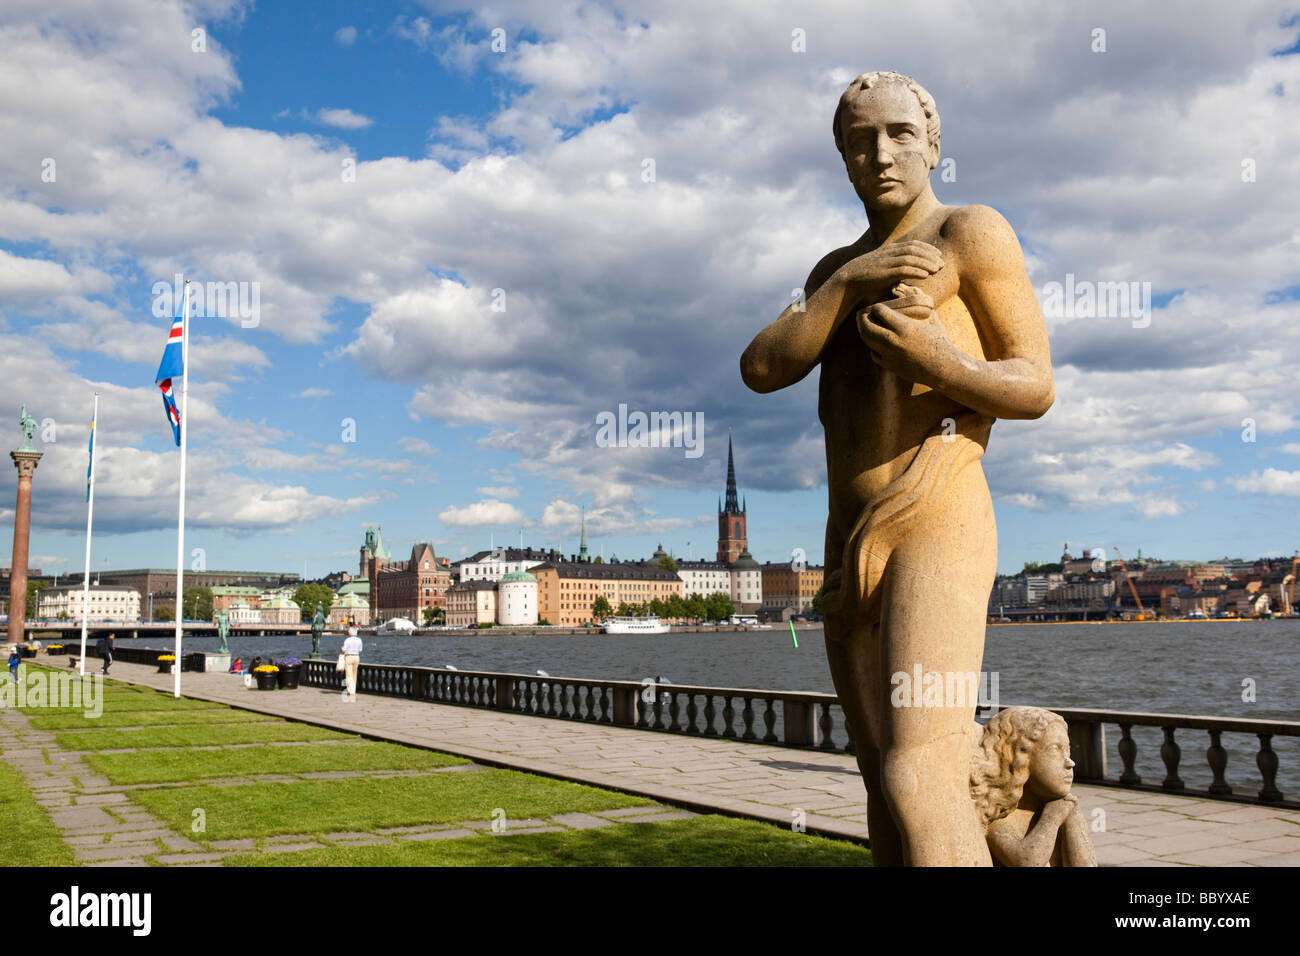 Statue of the Poet, City hall, Stockholm (Sweden) - Stock Image